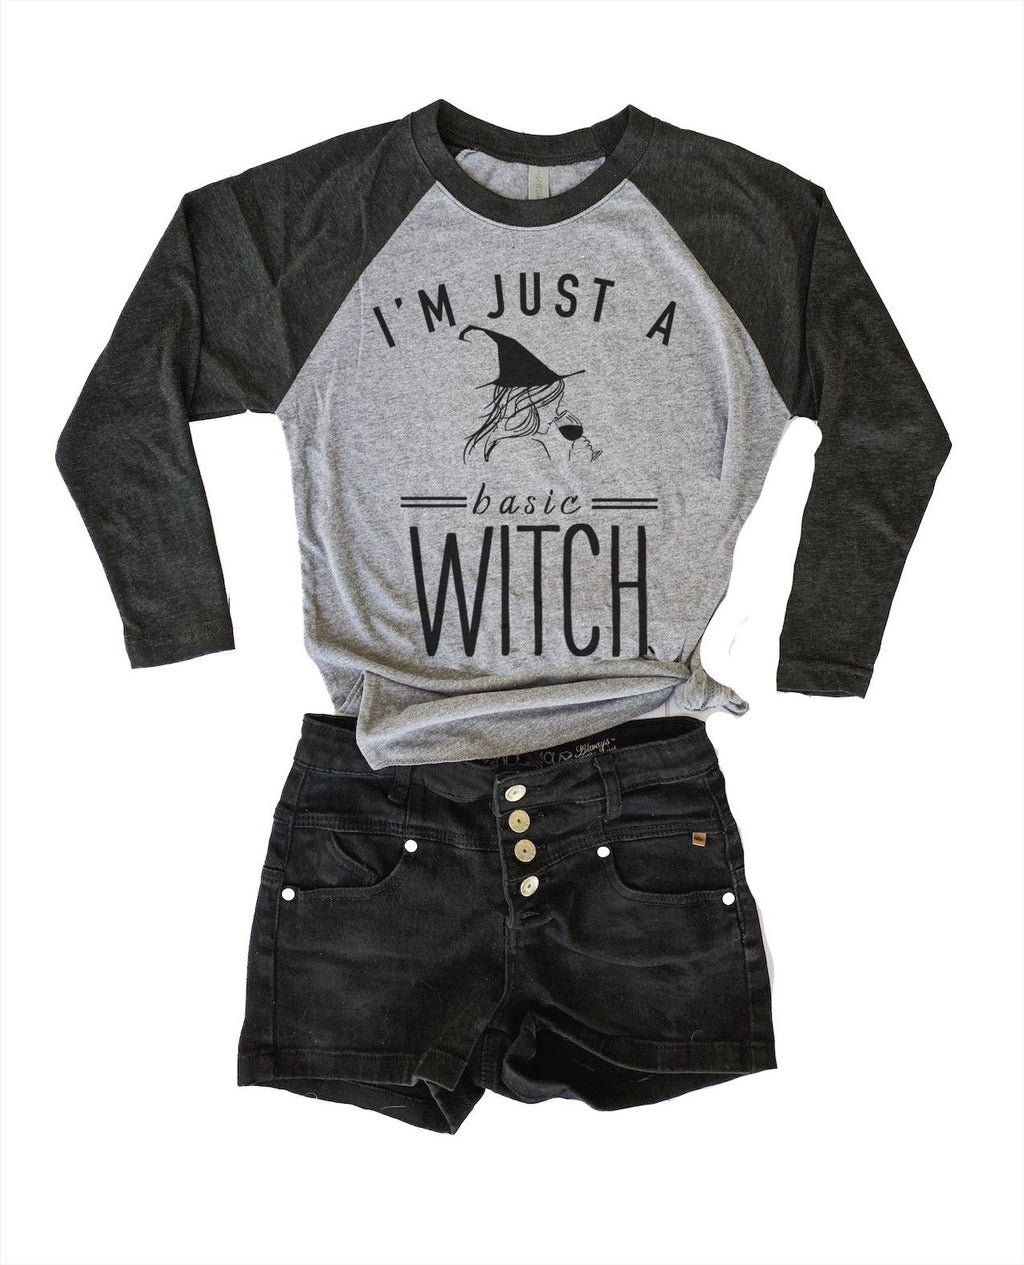 Be sure to get some laughs this year wearing our original Basic Witch design screen printed on our super duper soft and cozy unisex tee! So grab a glass of wine and enjoy being a Basic Witch with this Halloween tee!